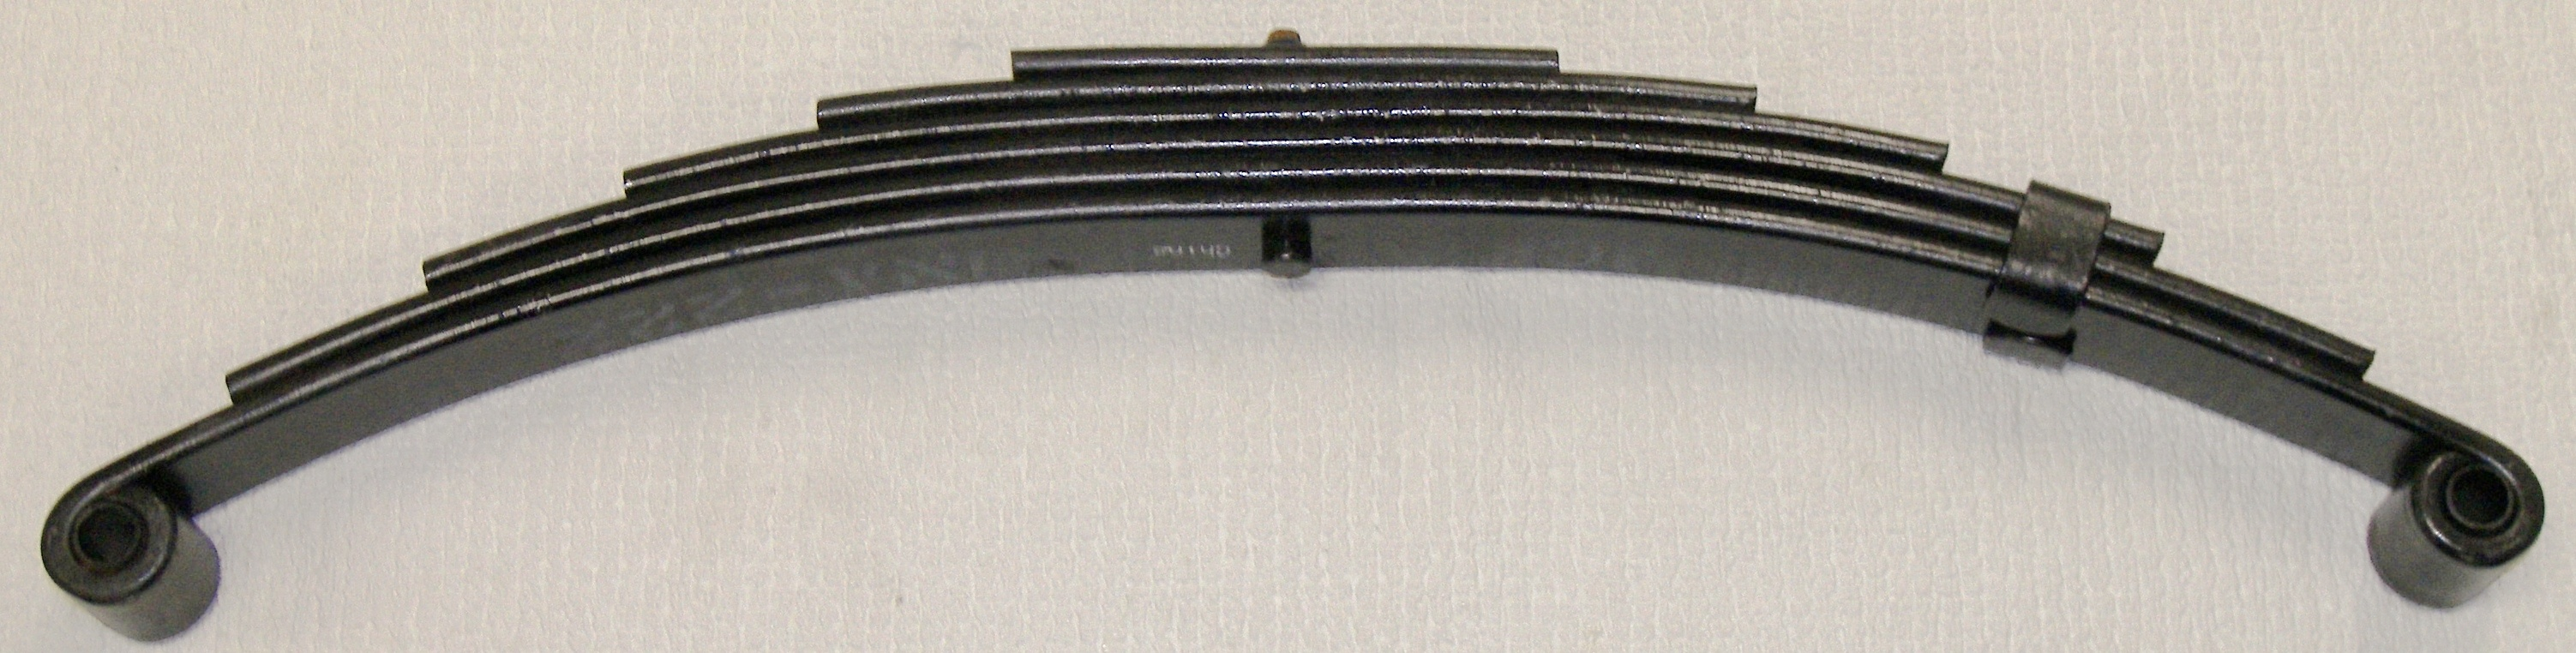 014-122113 AP Products Leaf Spring 1-3/4 Inch Height